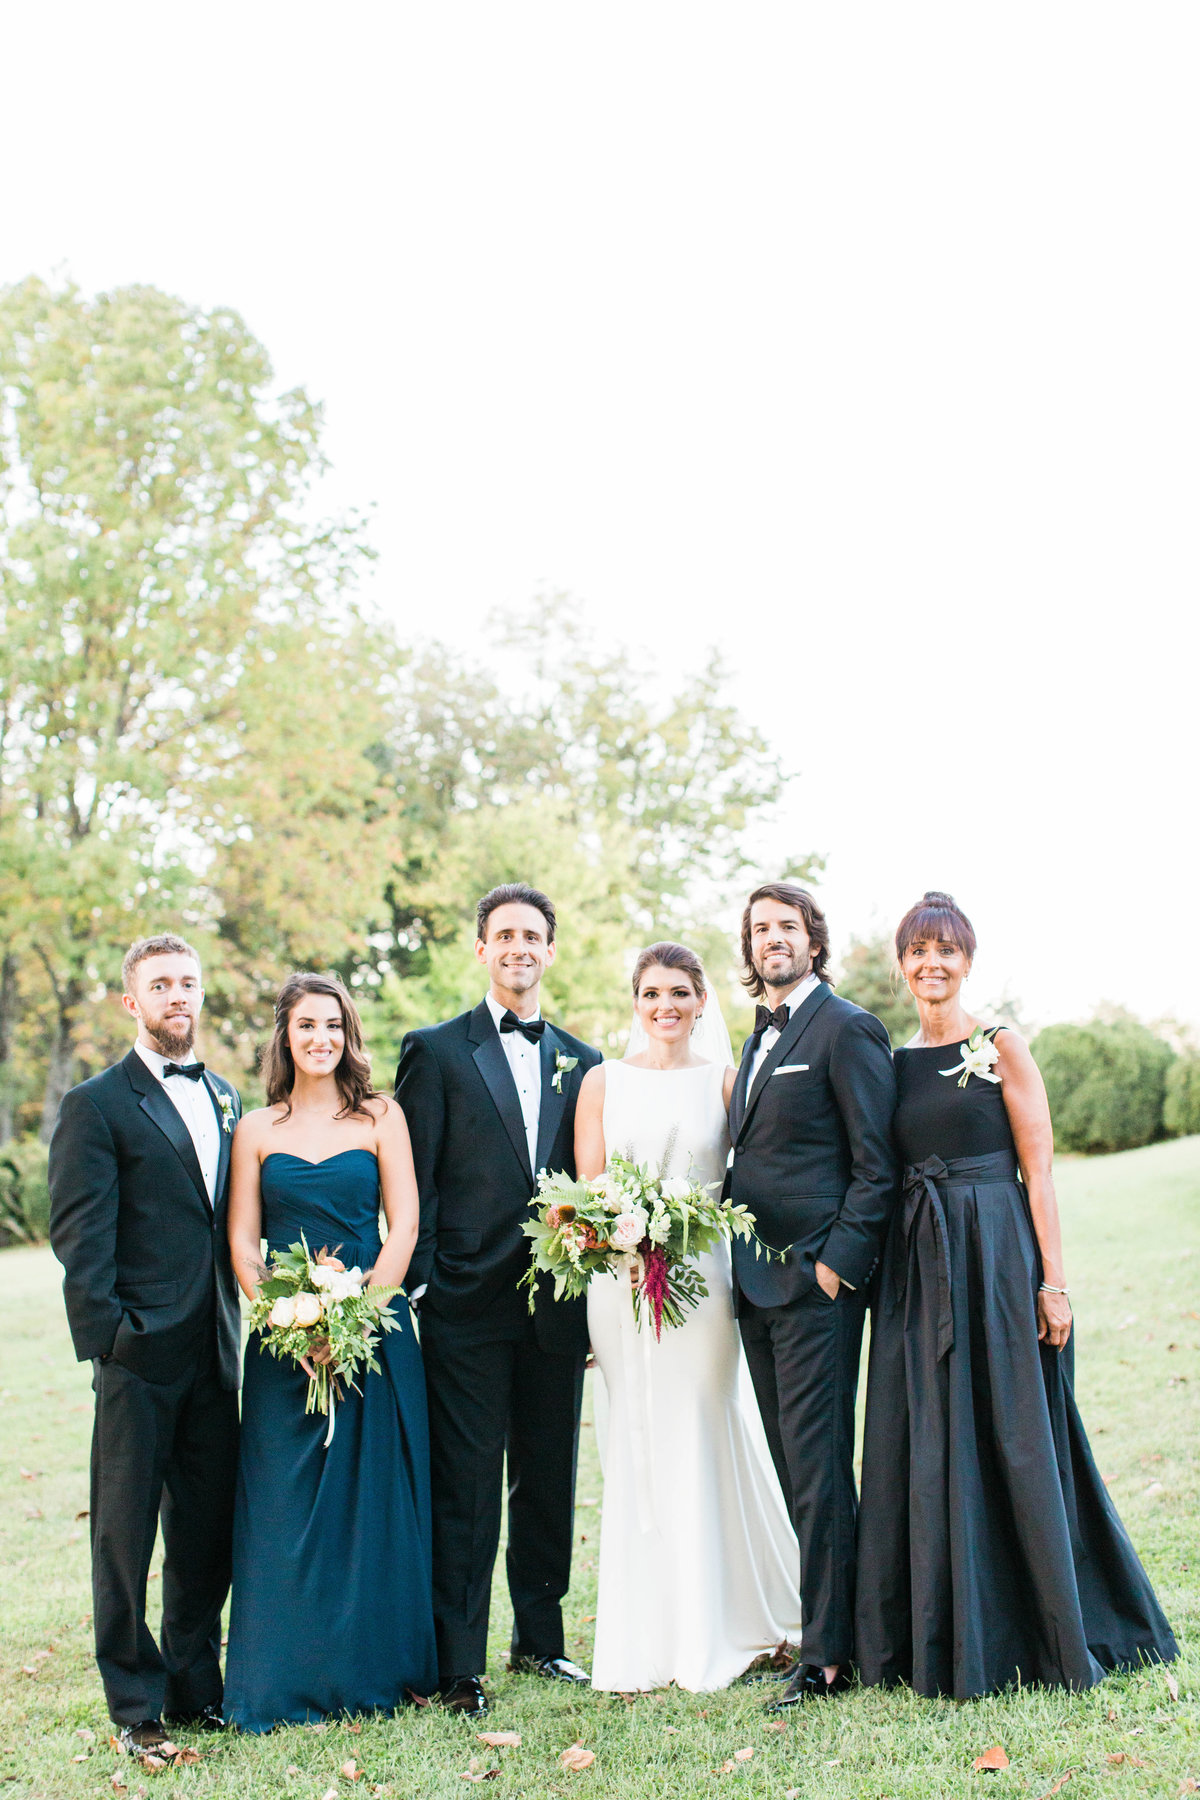 Charlottesville formal wedding portrait